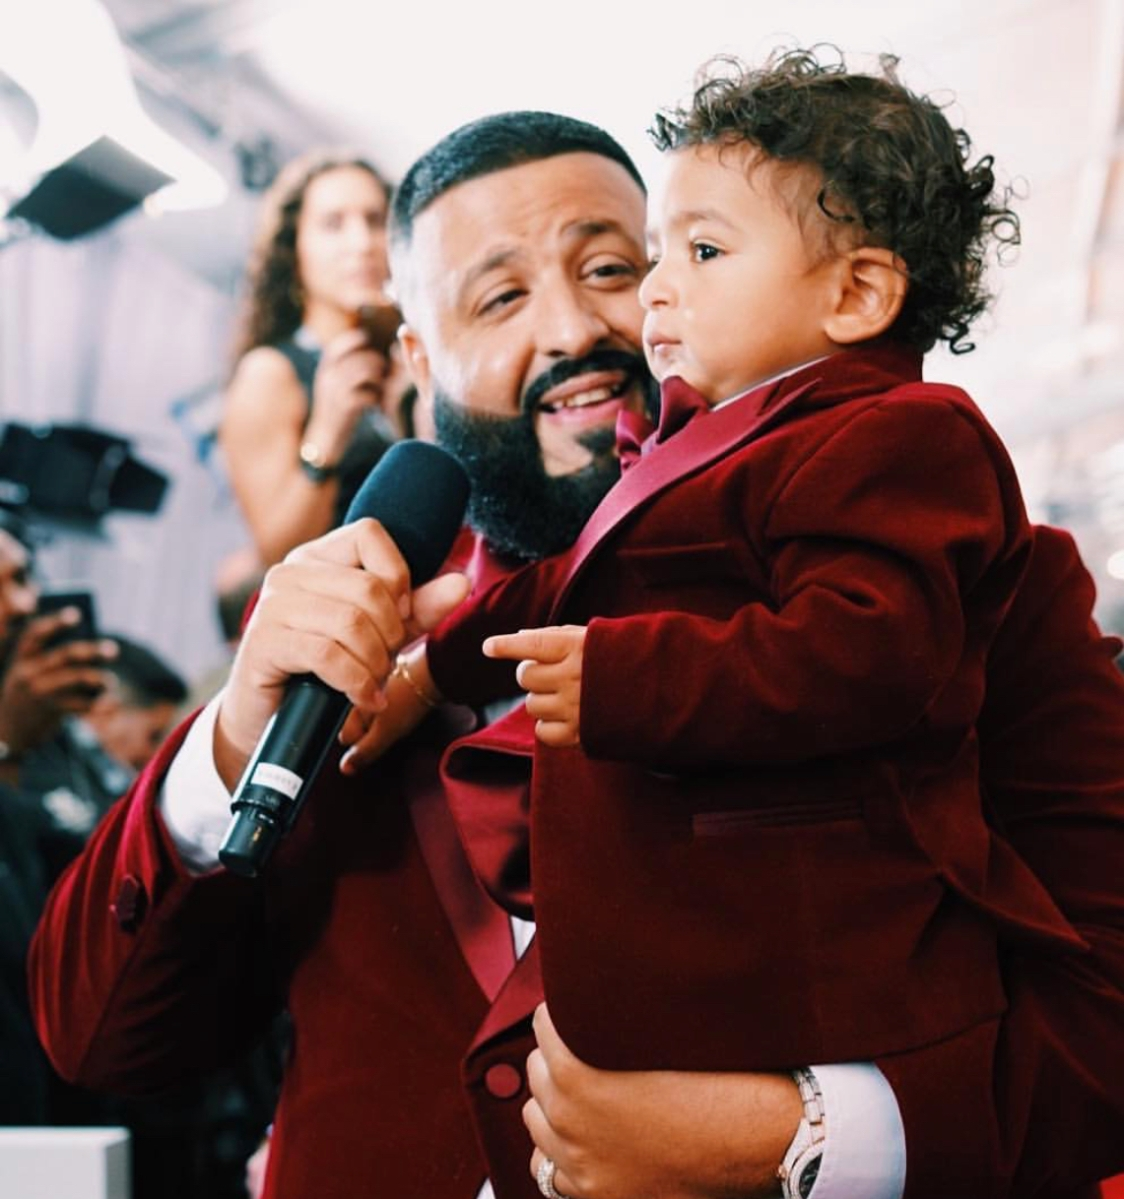 The Fabulous Life of Asahd, DJ Khaled's Toddler Son Who Wears a $100,000 Watch and Produced His First Album at 4 Months Old